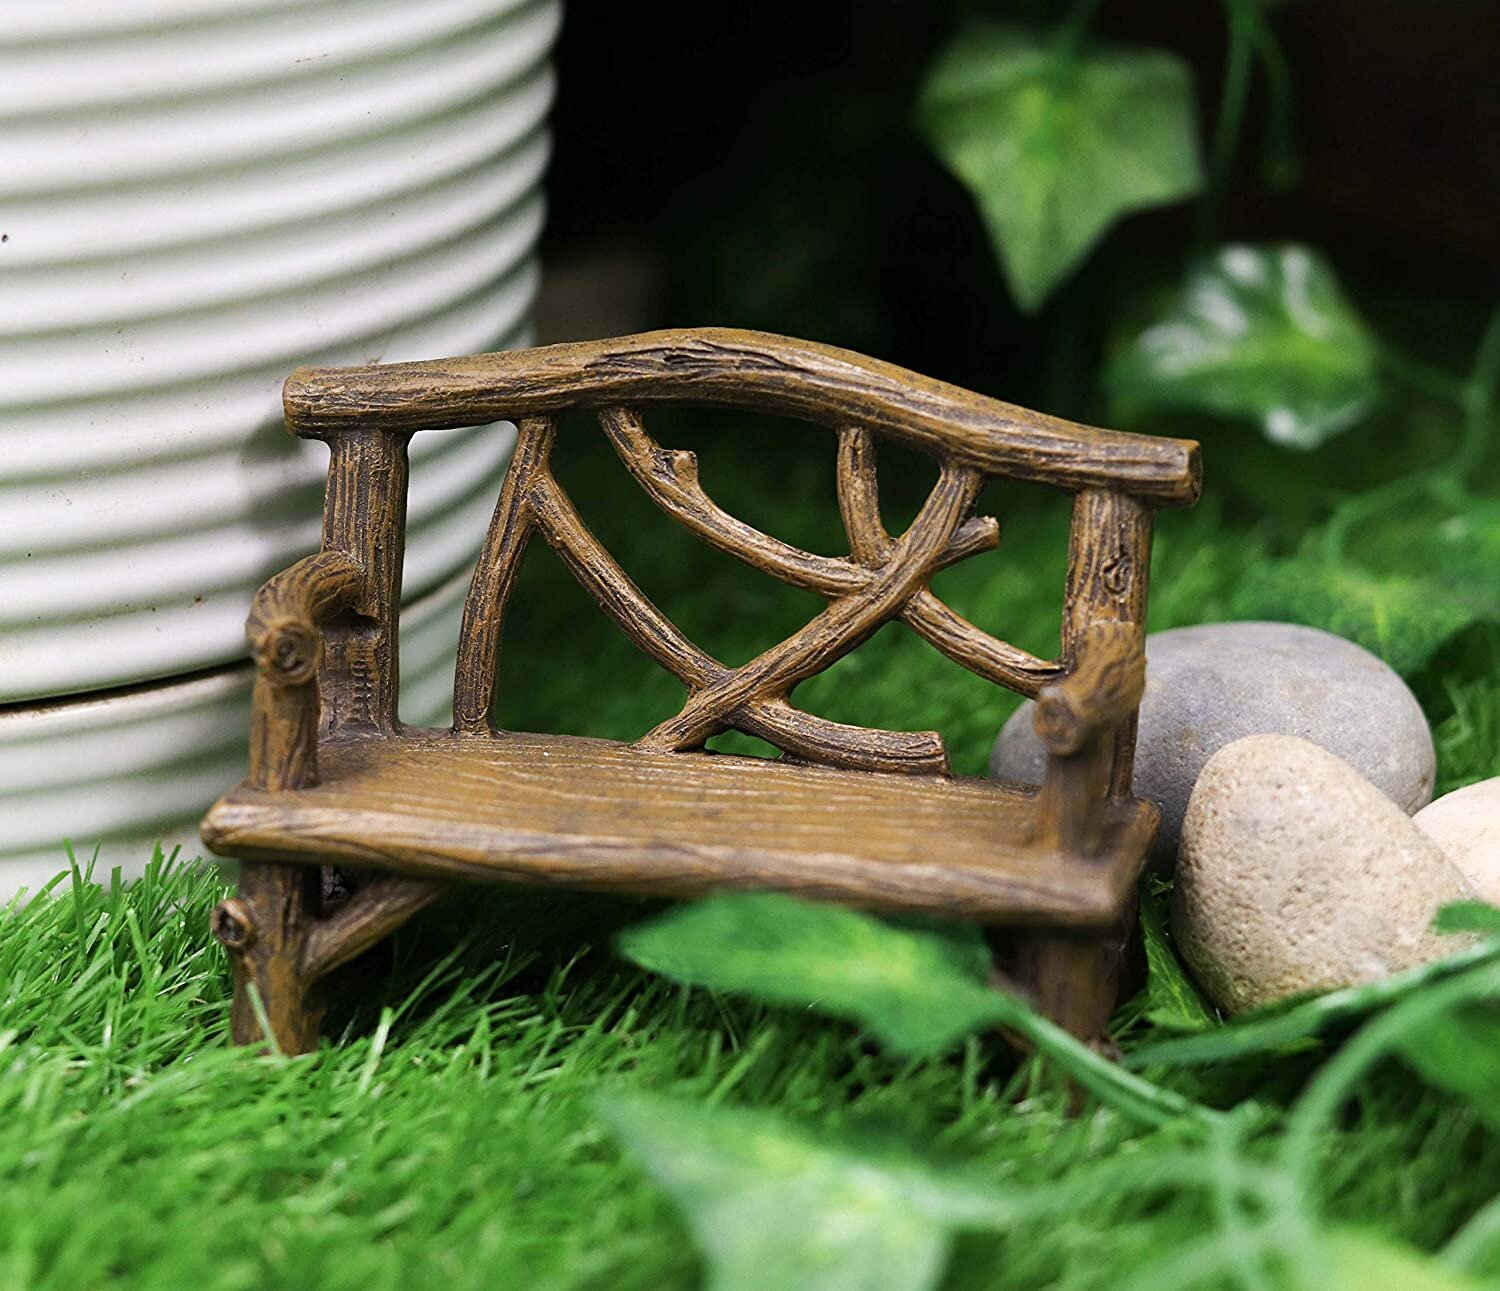 Loon Peak Enchanted Fairy Garden Terrarium Miniature Tree Twigs And Branch Love Bench Resin Sculpture 3 5 Inch Tall Do It Yourself Ideas For Your Home Decorative Nook Wayfair Ca